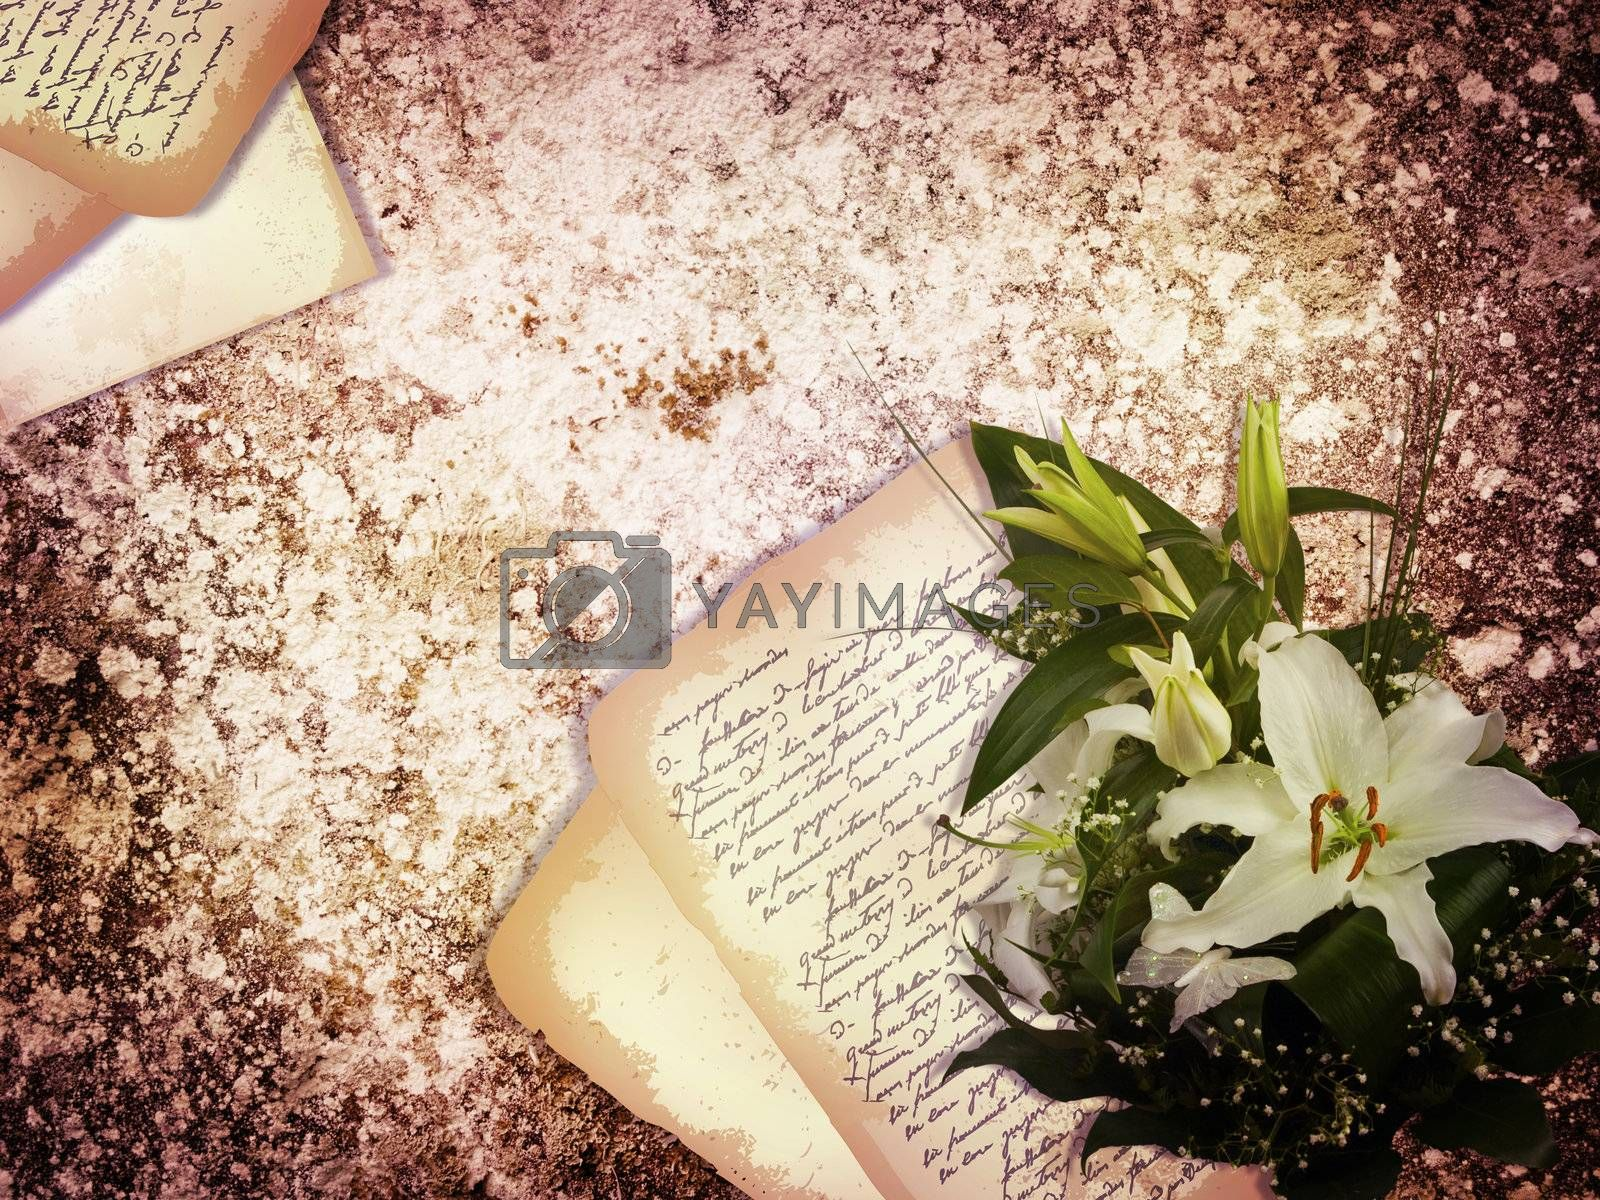 abstract vintage holiday grunge background with old letter and lily flowers